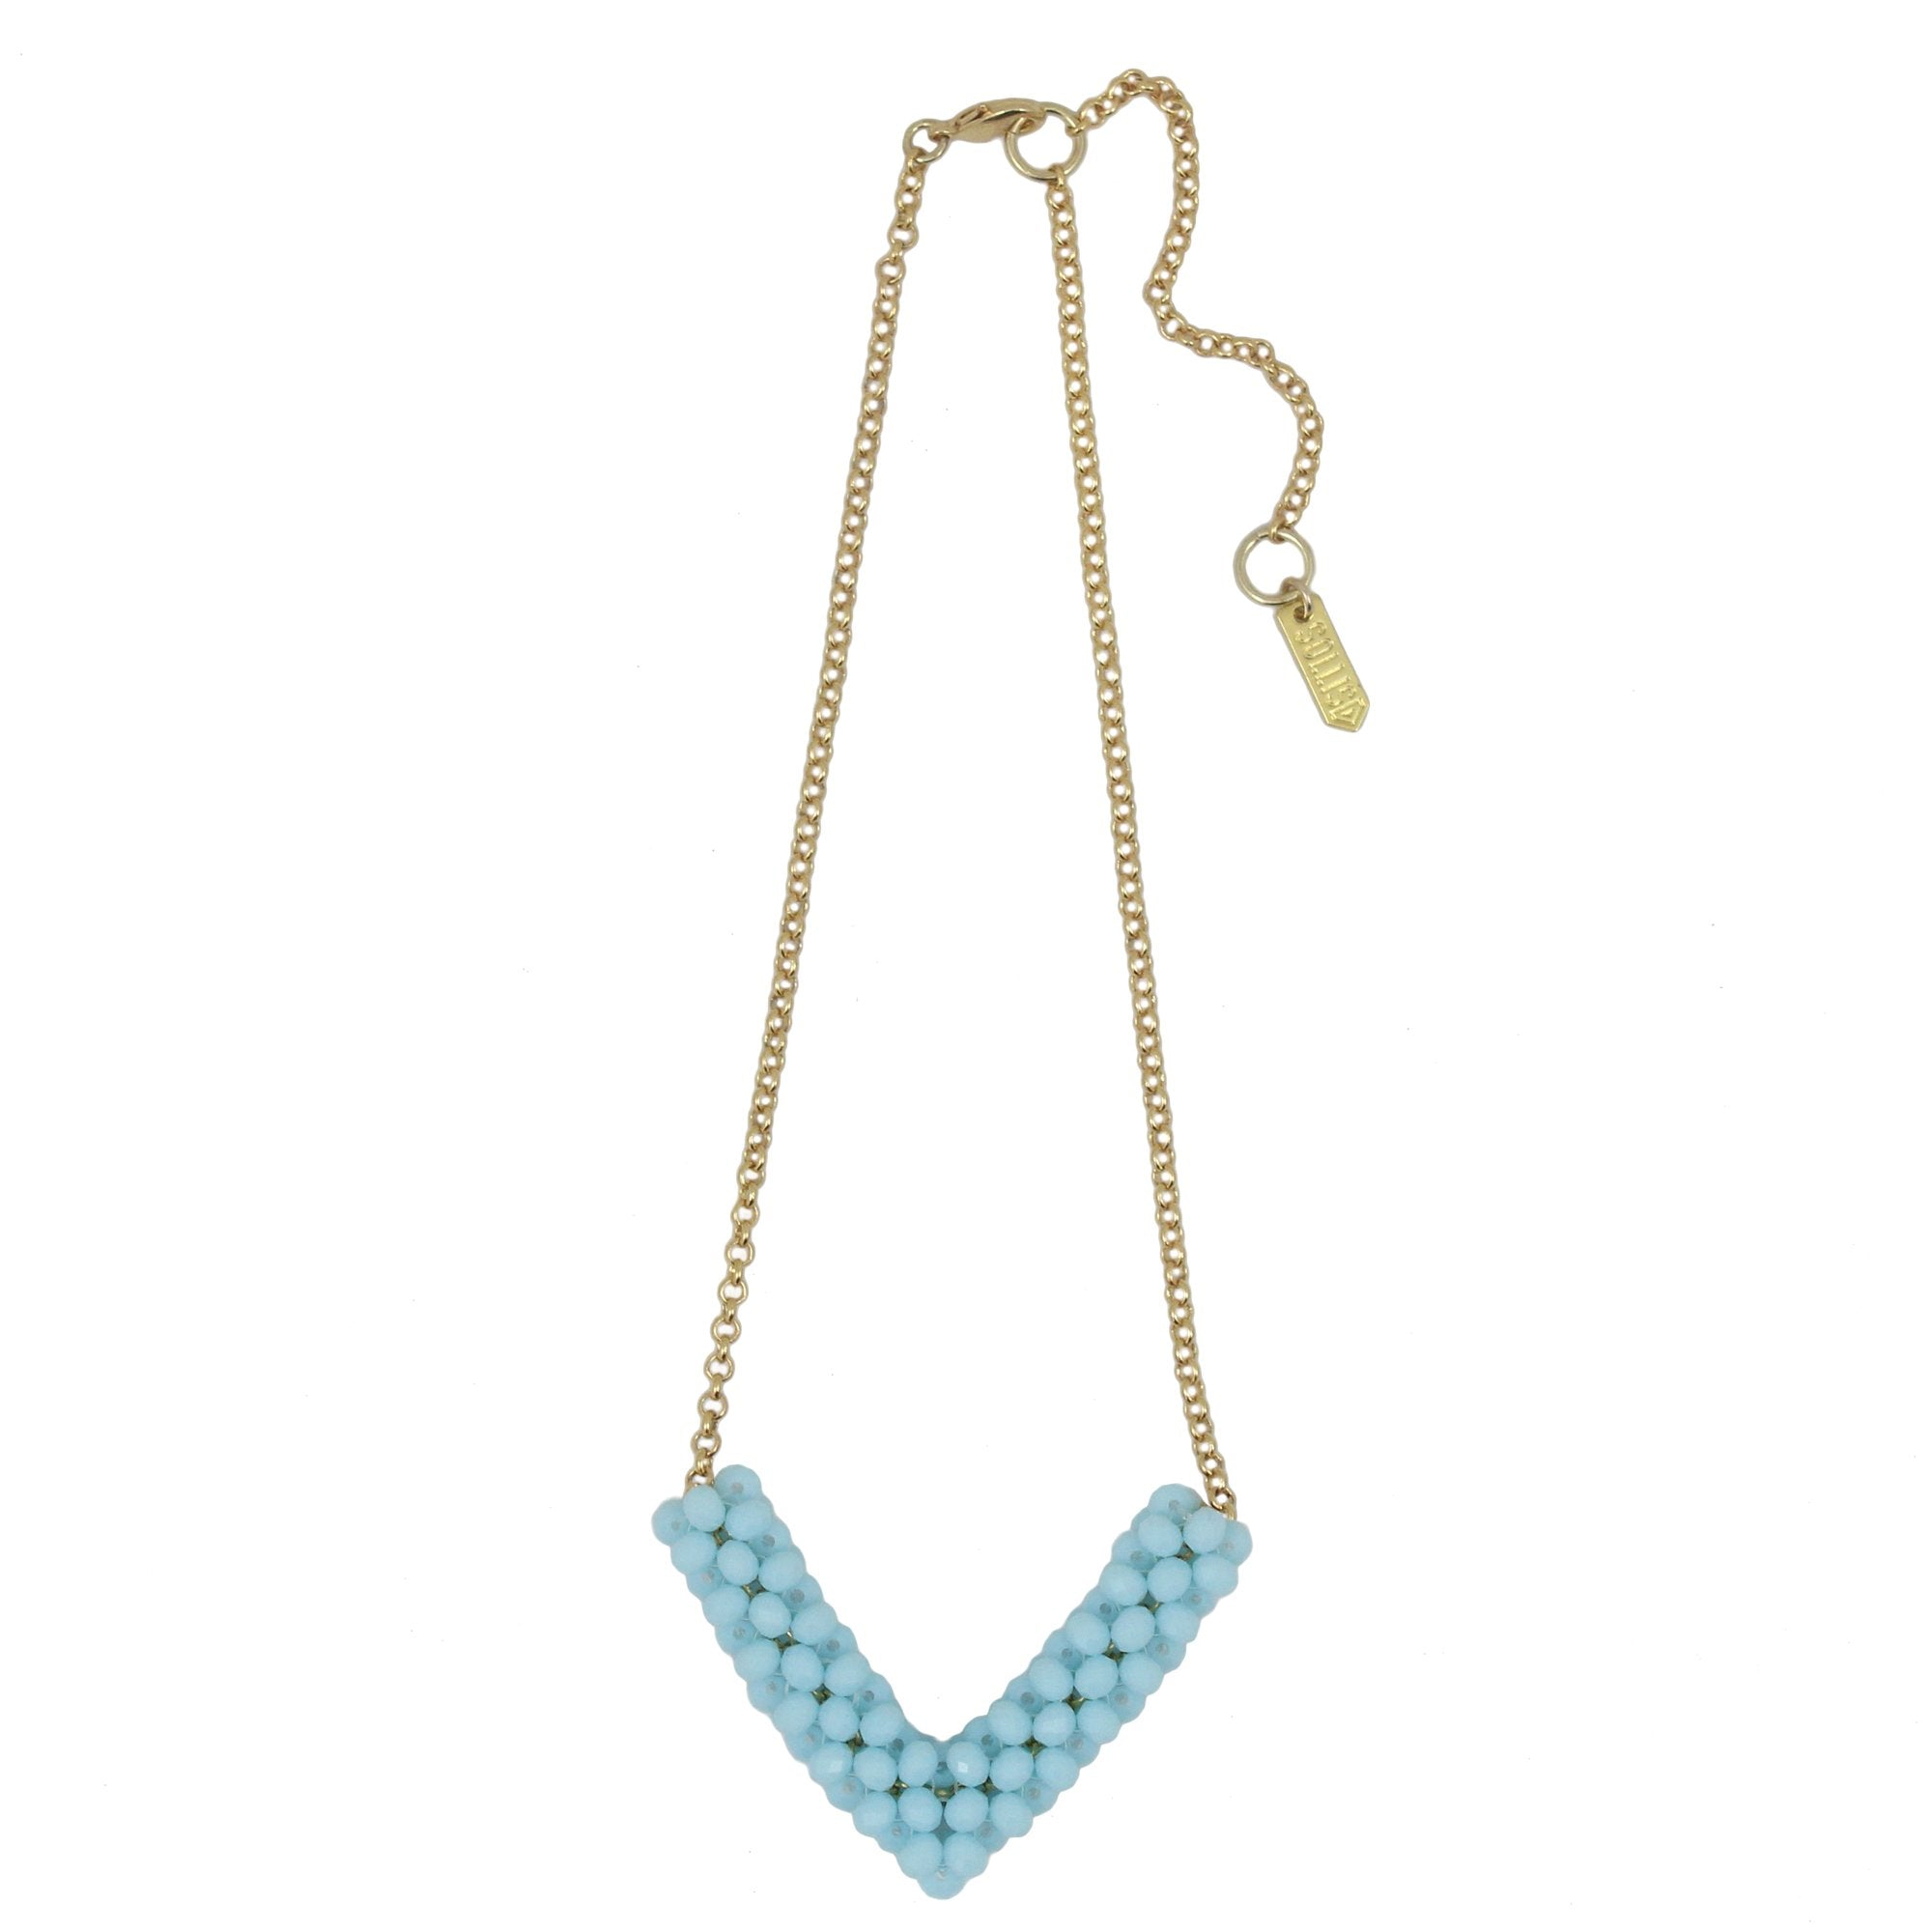 VOLLA necklace - 50% OFF